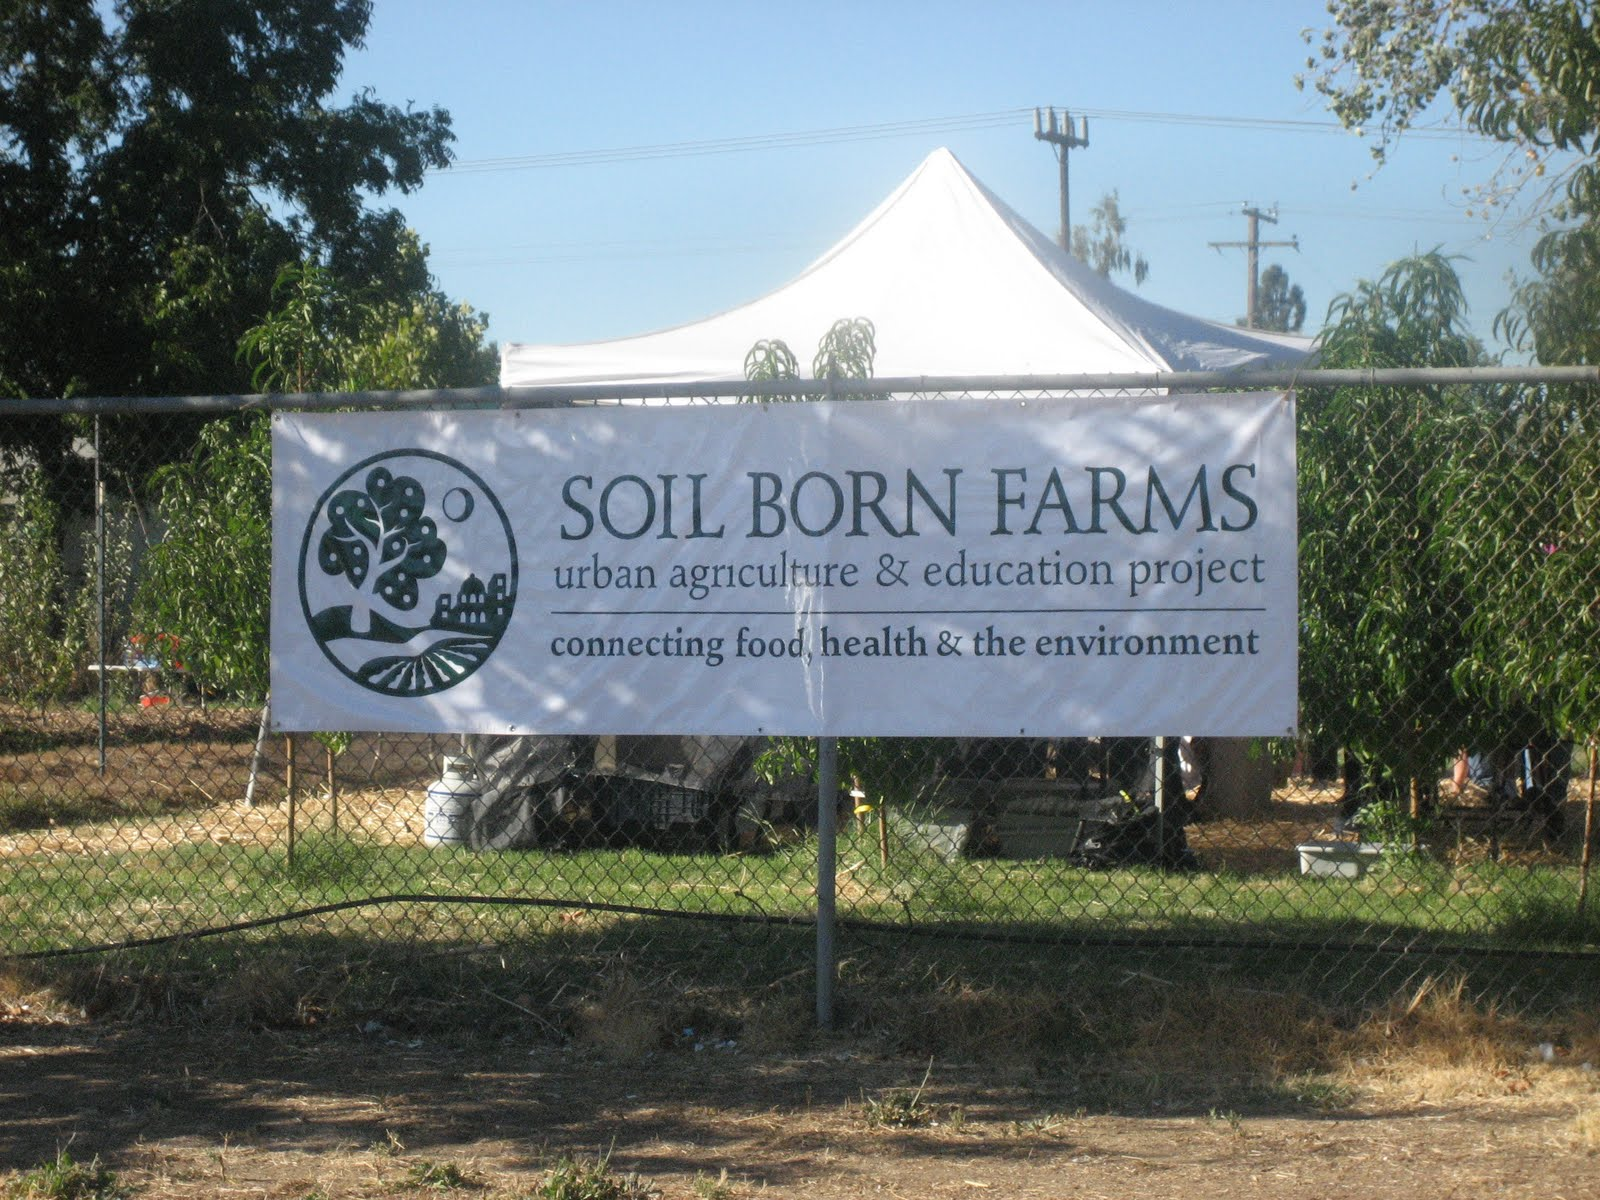 The bounty of soil born farms a worthy cause by any for Soil born farms